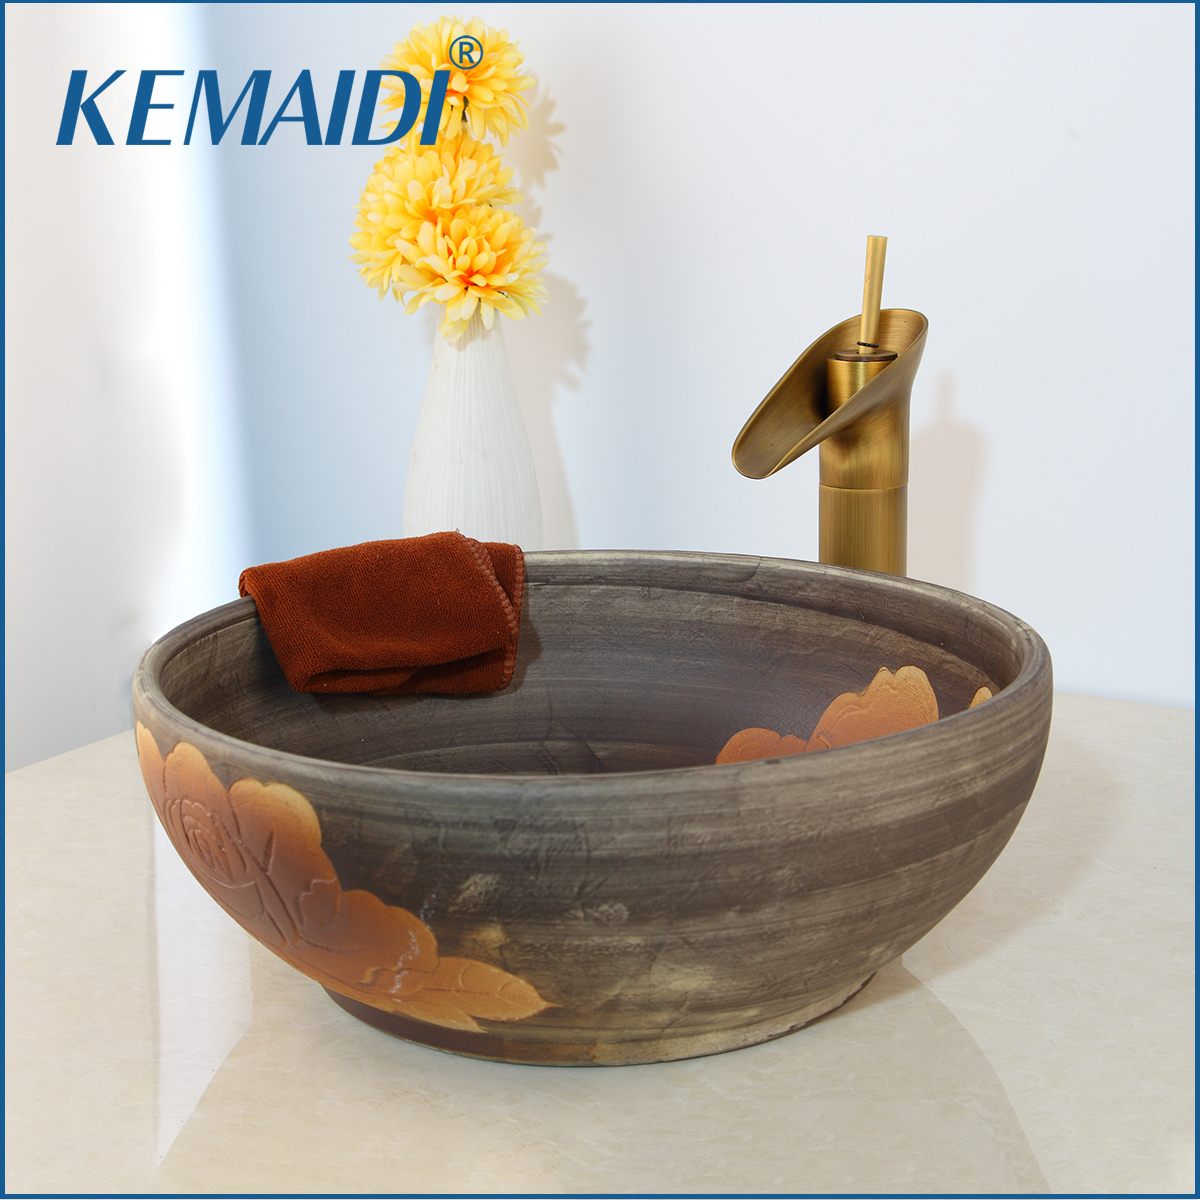 KEMAIDI Art Ceramic Vessel Bathroom Sink Set Waterfall Antique Brass Bathroom Faucet White Design Golden inside